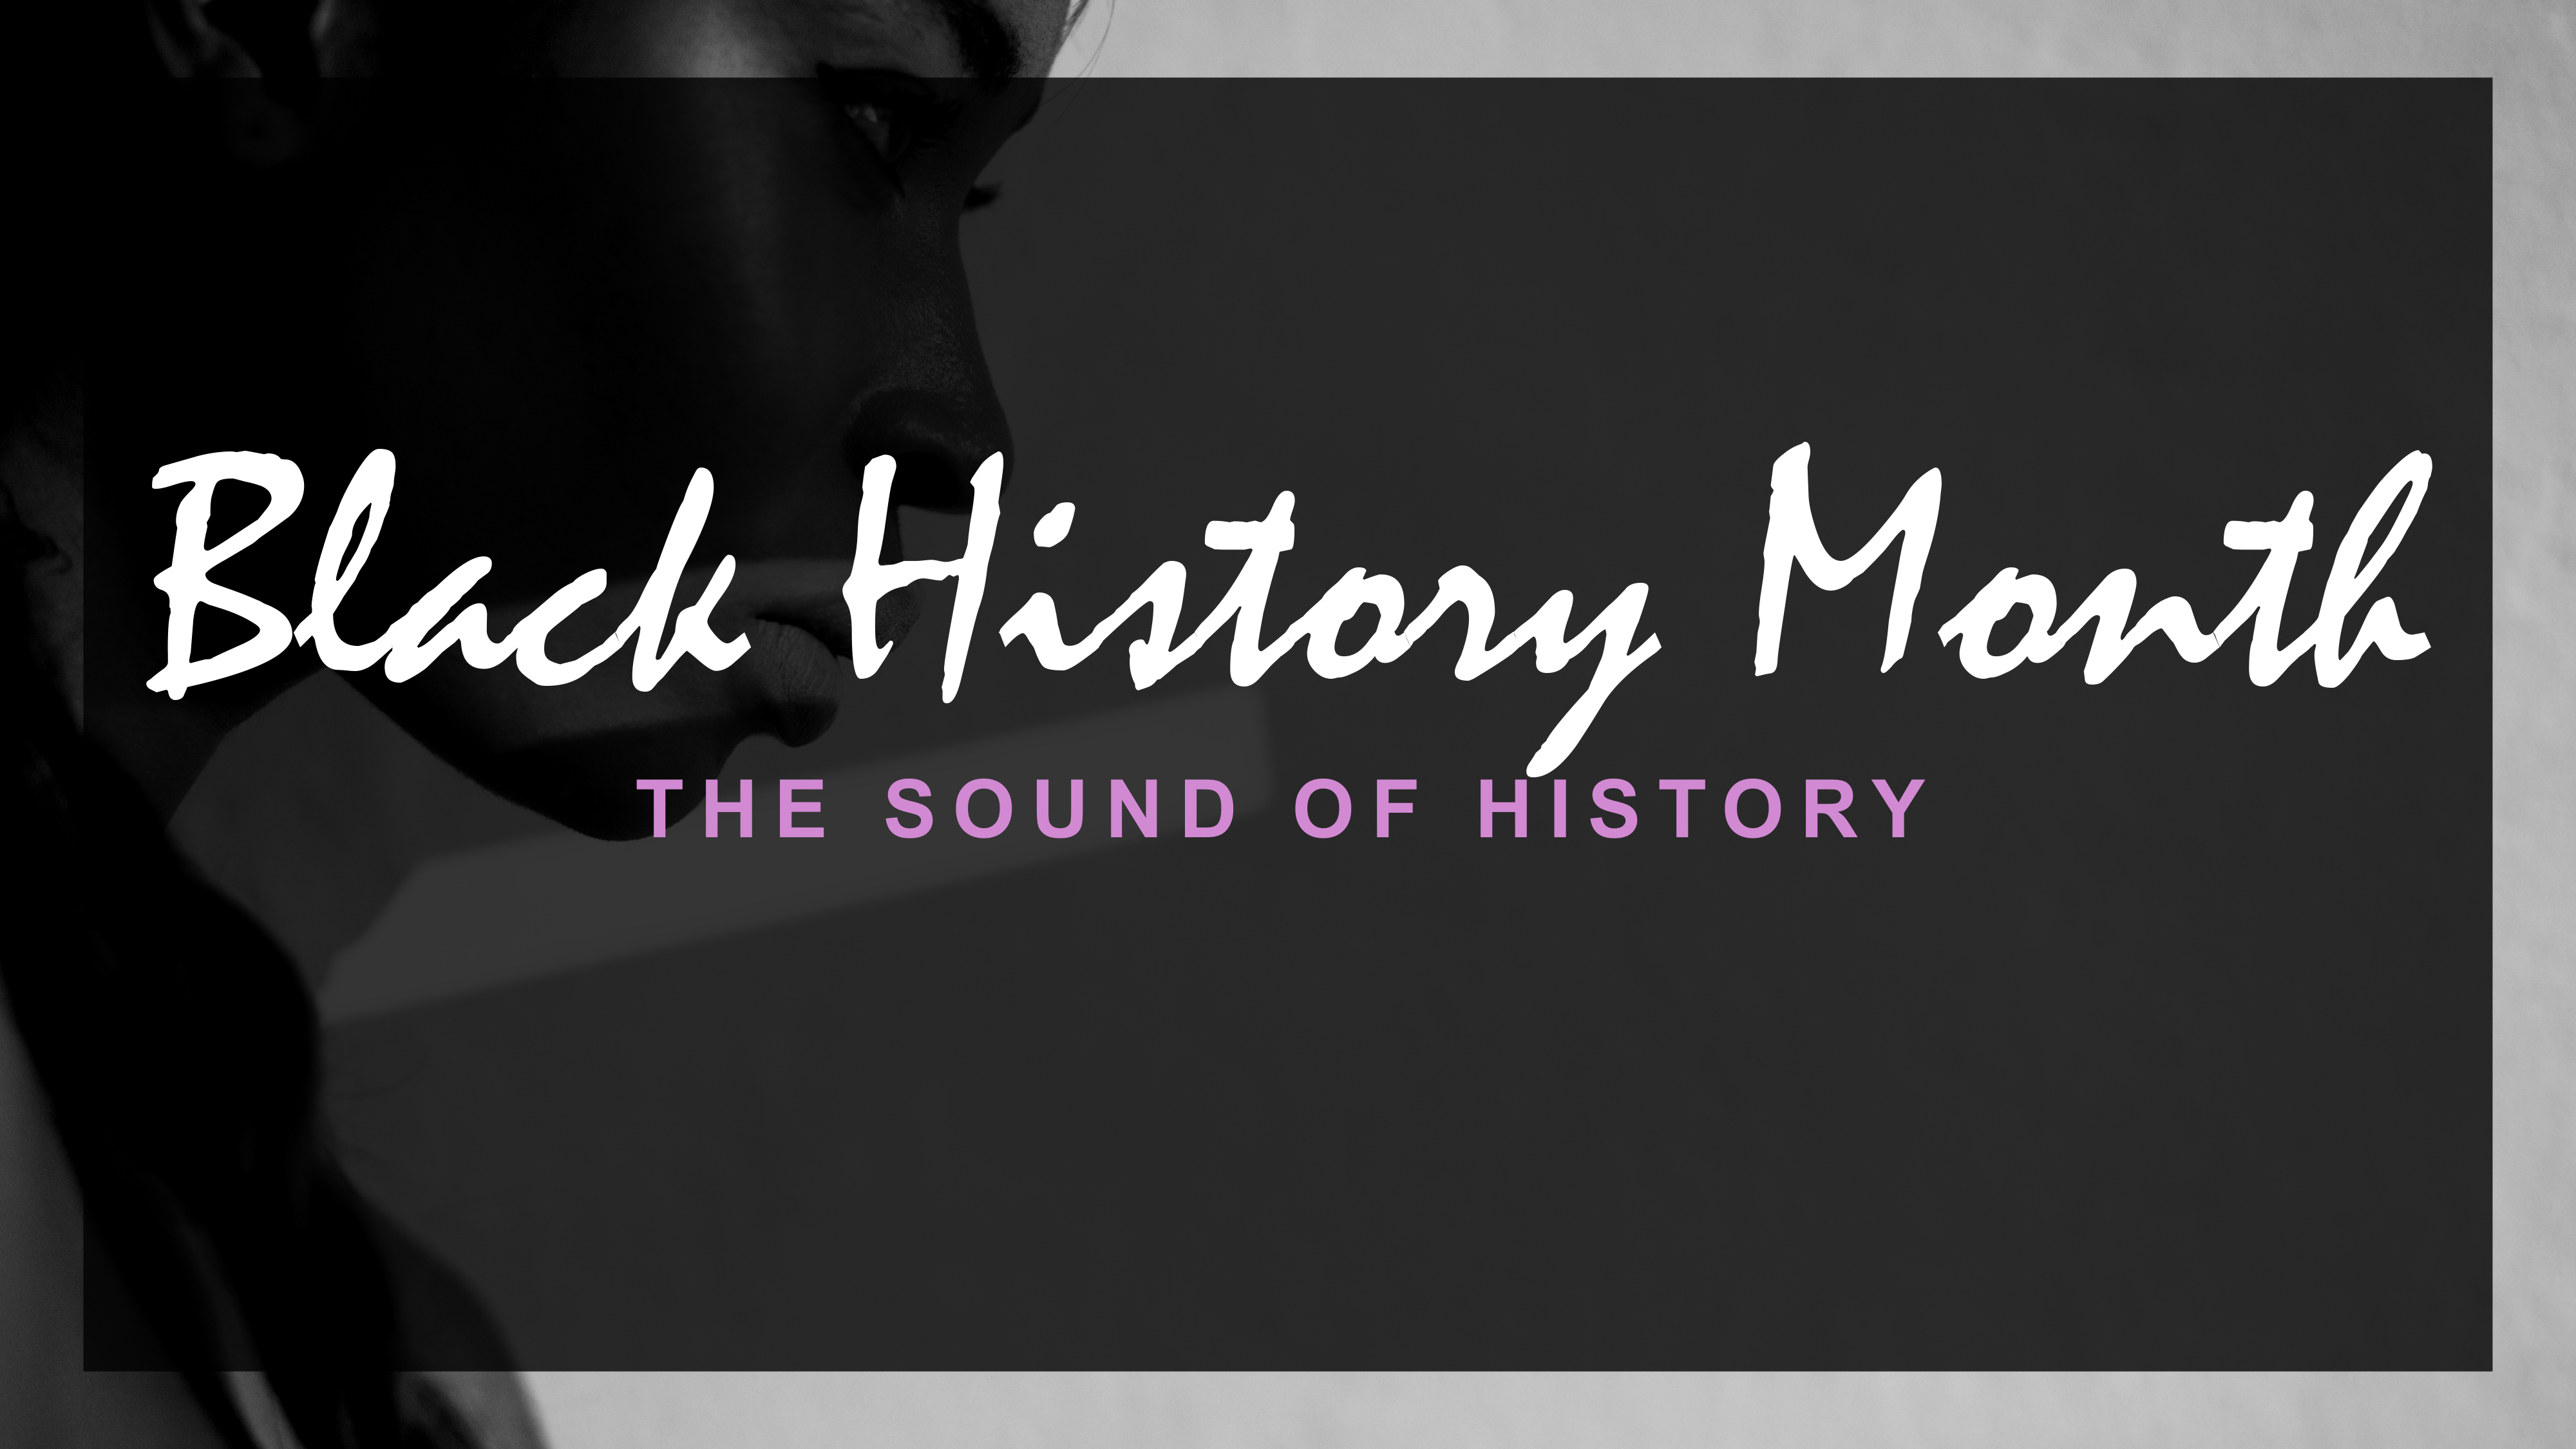 BlackHistoryMonth_PresentationDesign_6